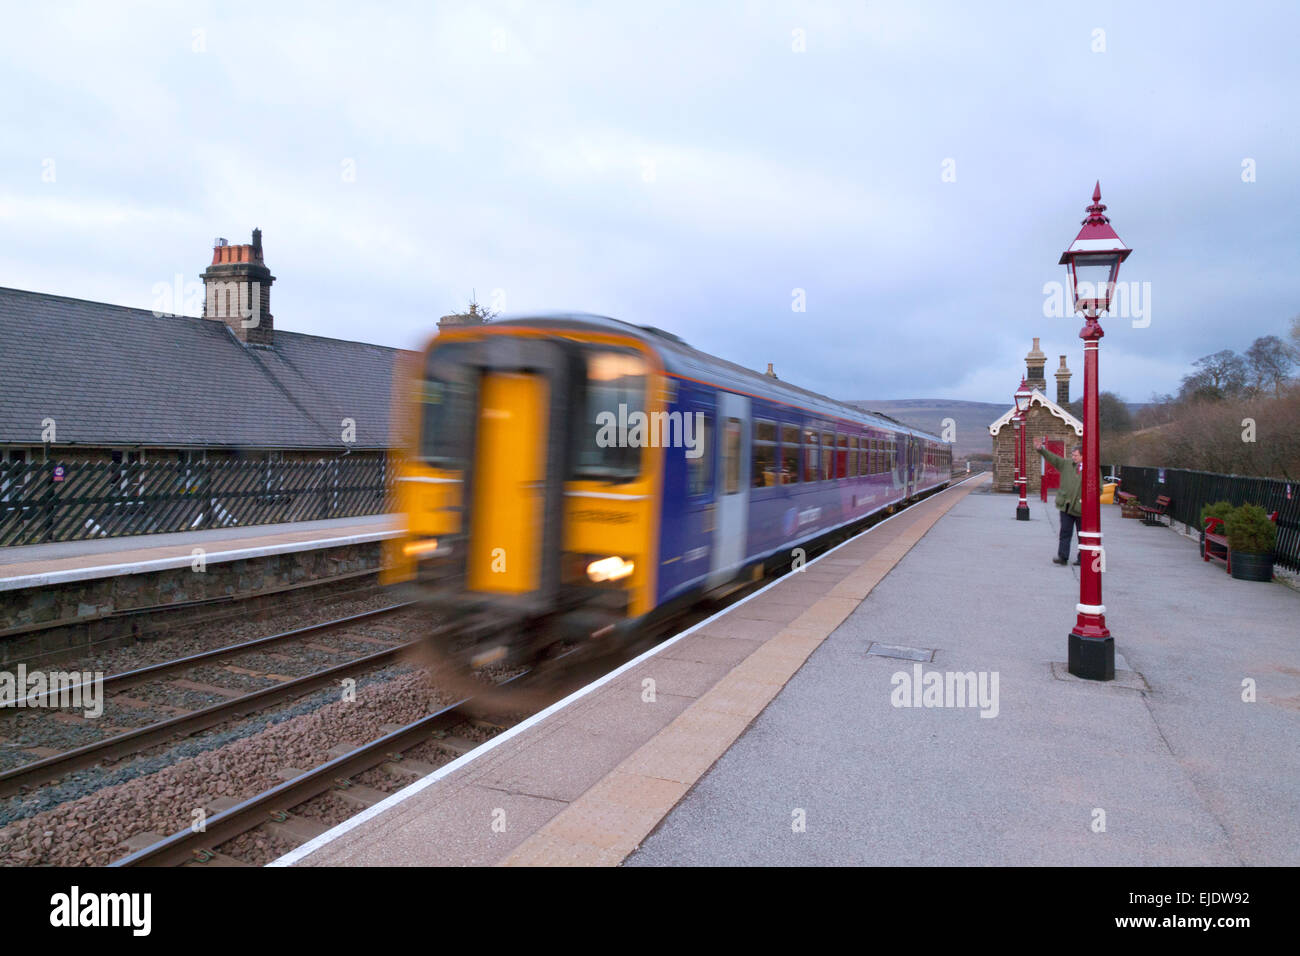 A Northern Rail train leaving Garsdale station on the Settle Carlisle line, Yorkshire Dales, UK - Stock Image